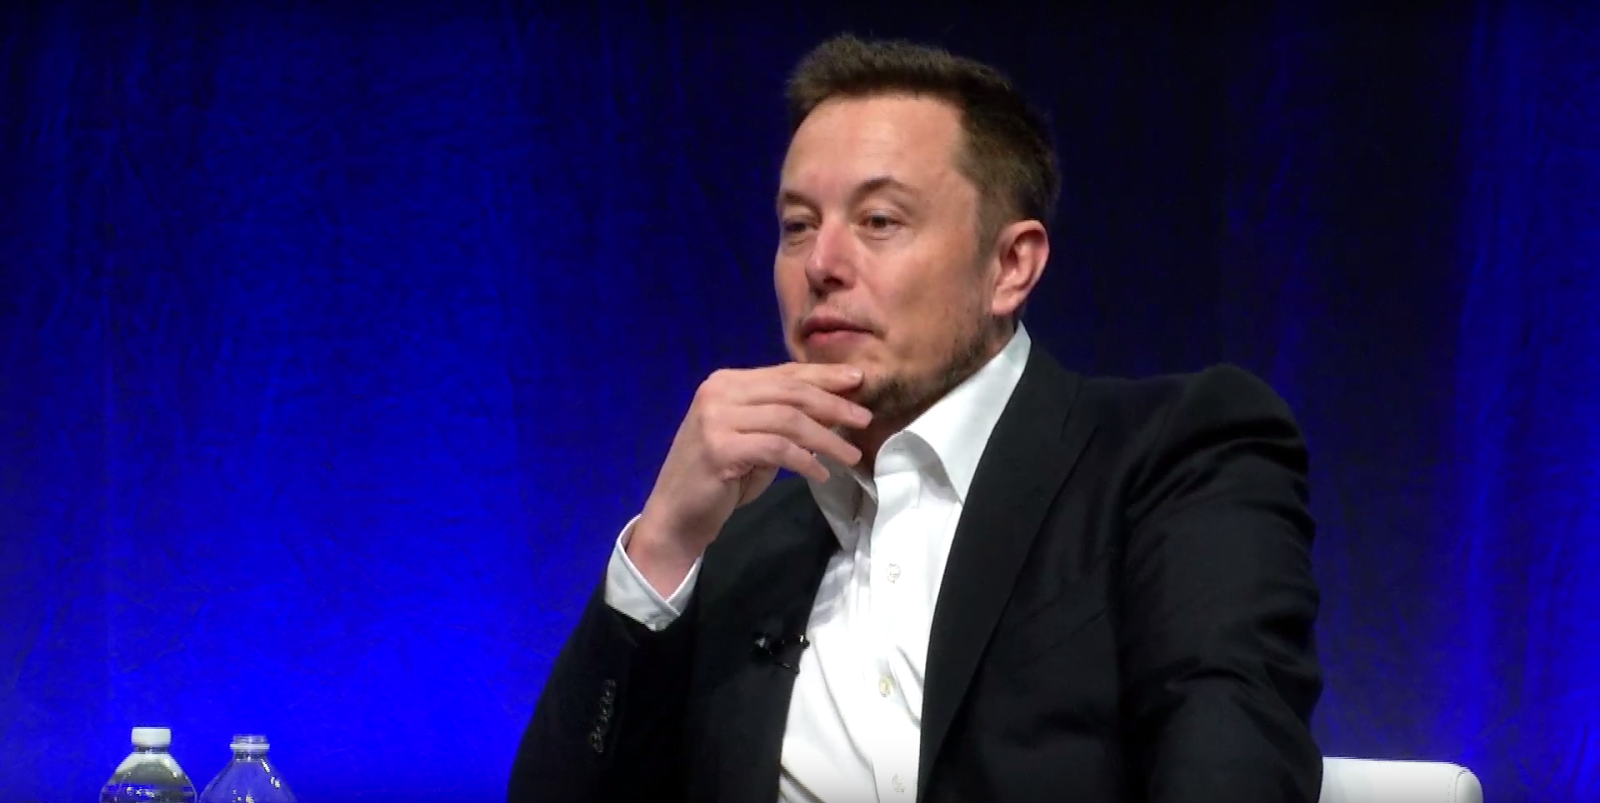 Tesla was within weeks of dying because of Model 3 delays, says Elon